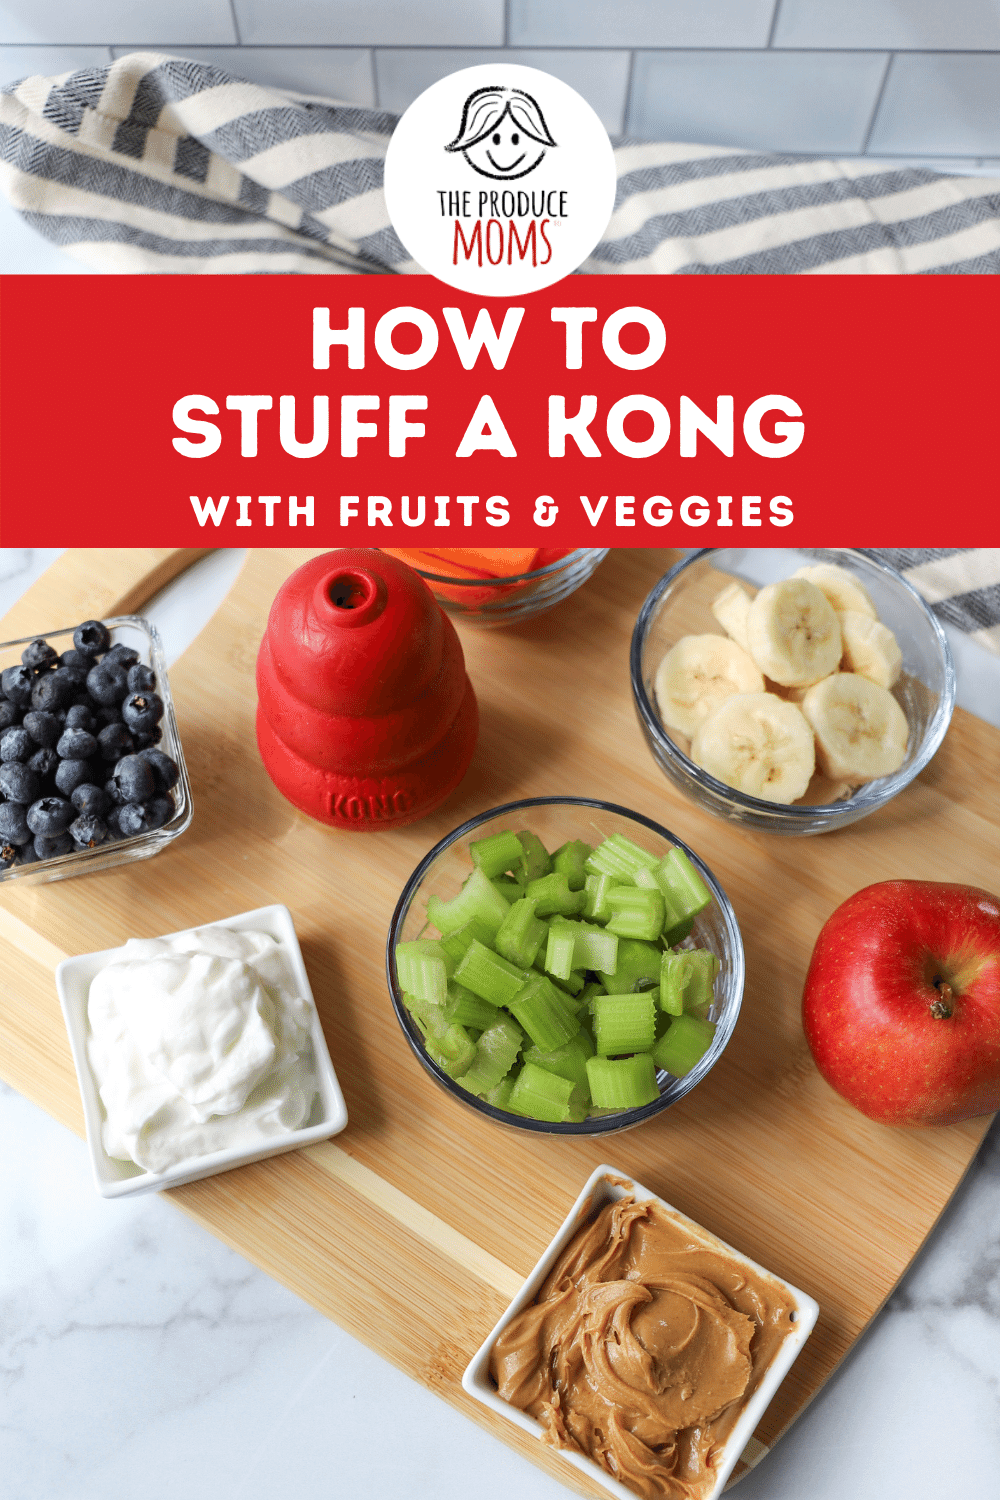 How To Stuff a Kong with Fruits and Veggies